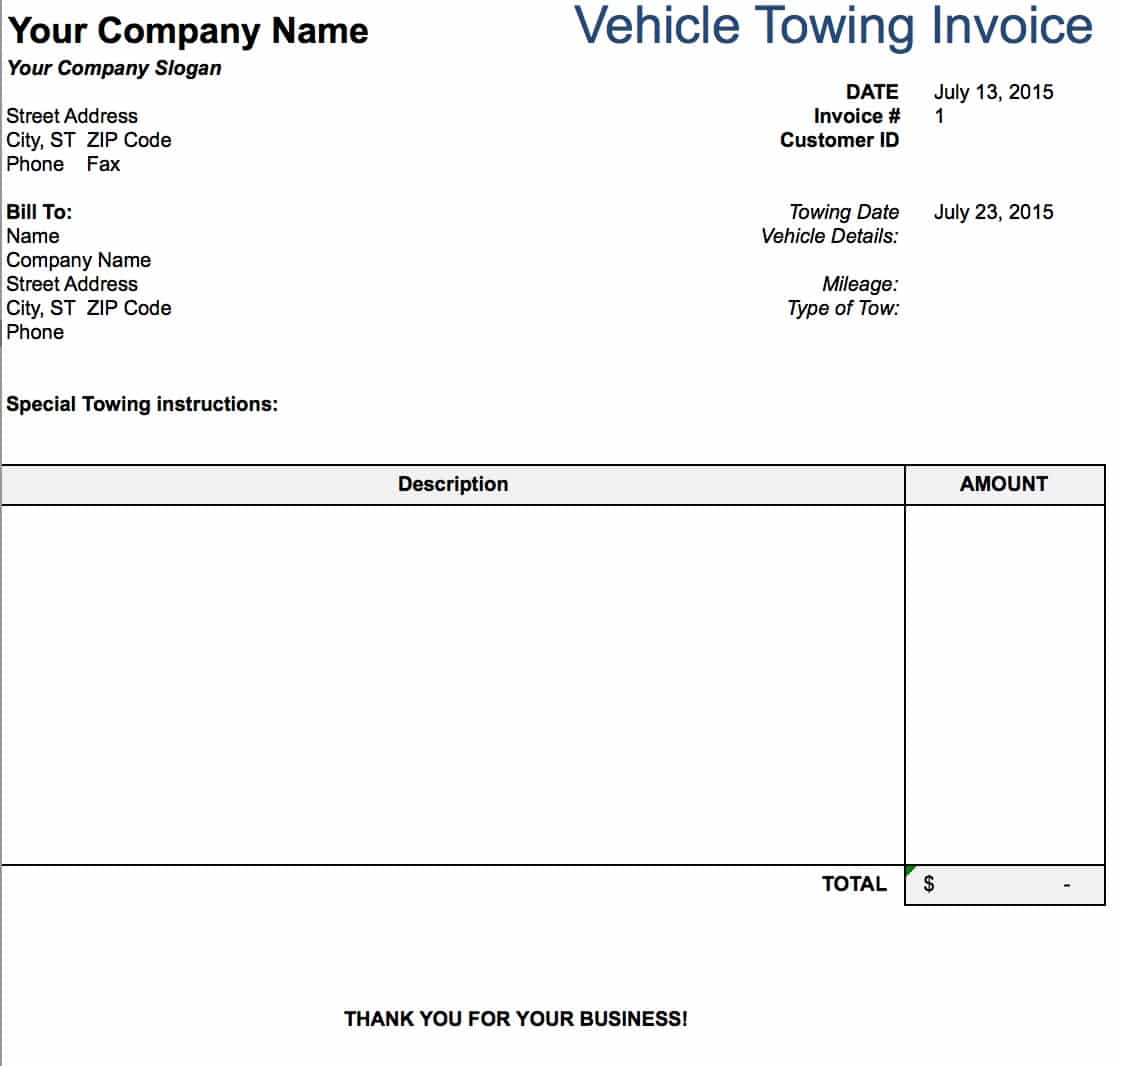 Free Tow Service Invoice Template Excel PDF Word Doc - Invoice sample word for service business